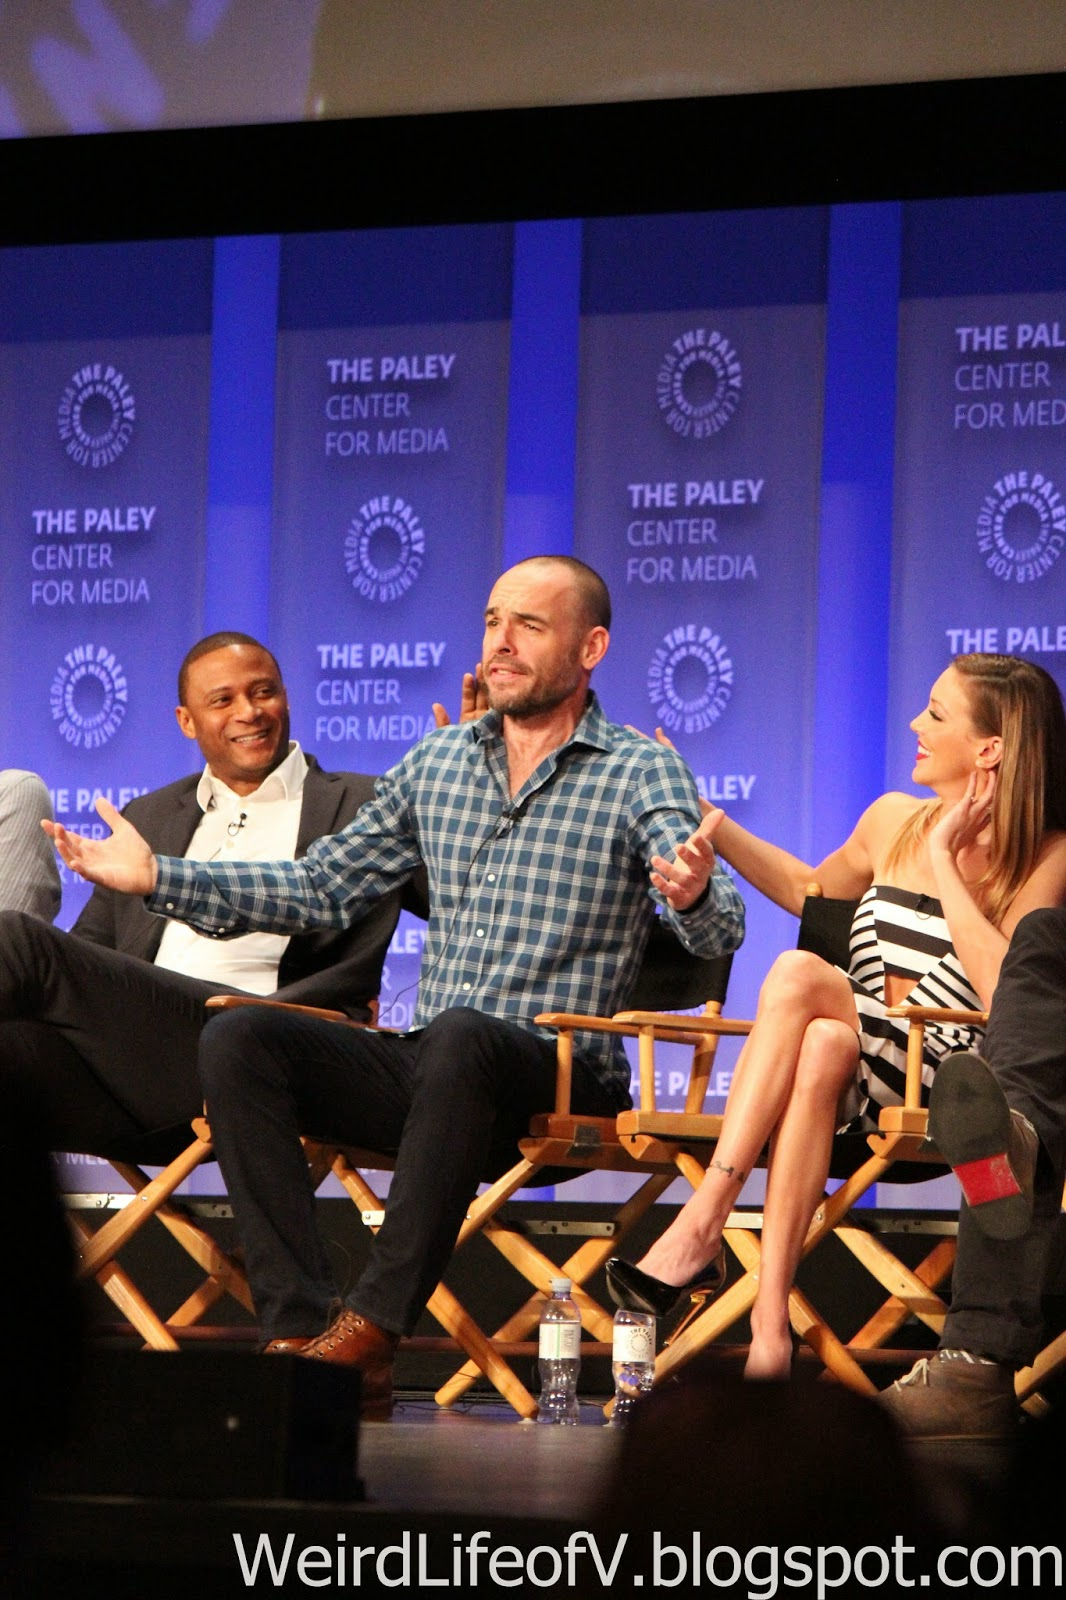 David Ramsey, Paul Blackthorne, and Katie Cassidy